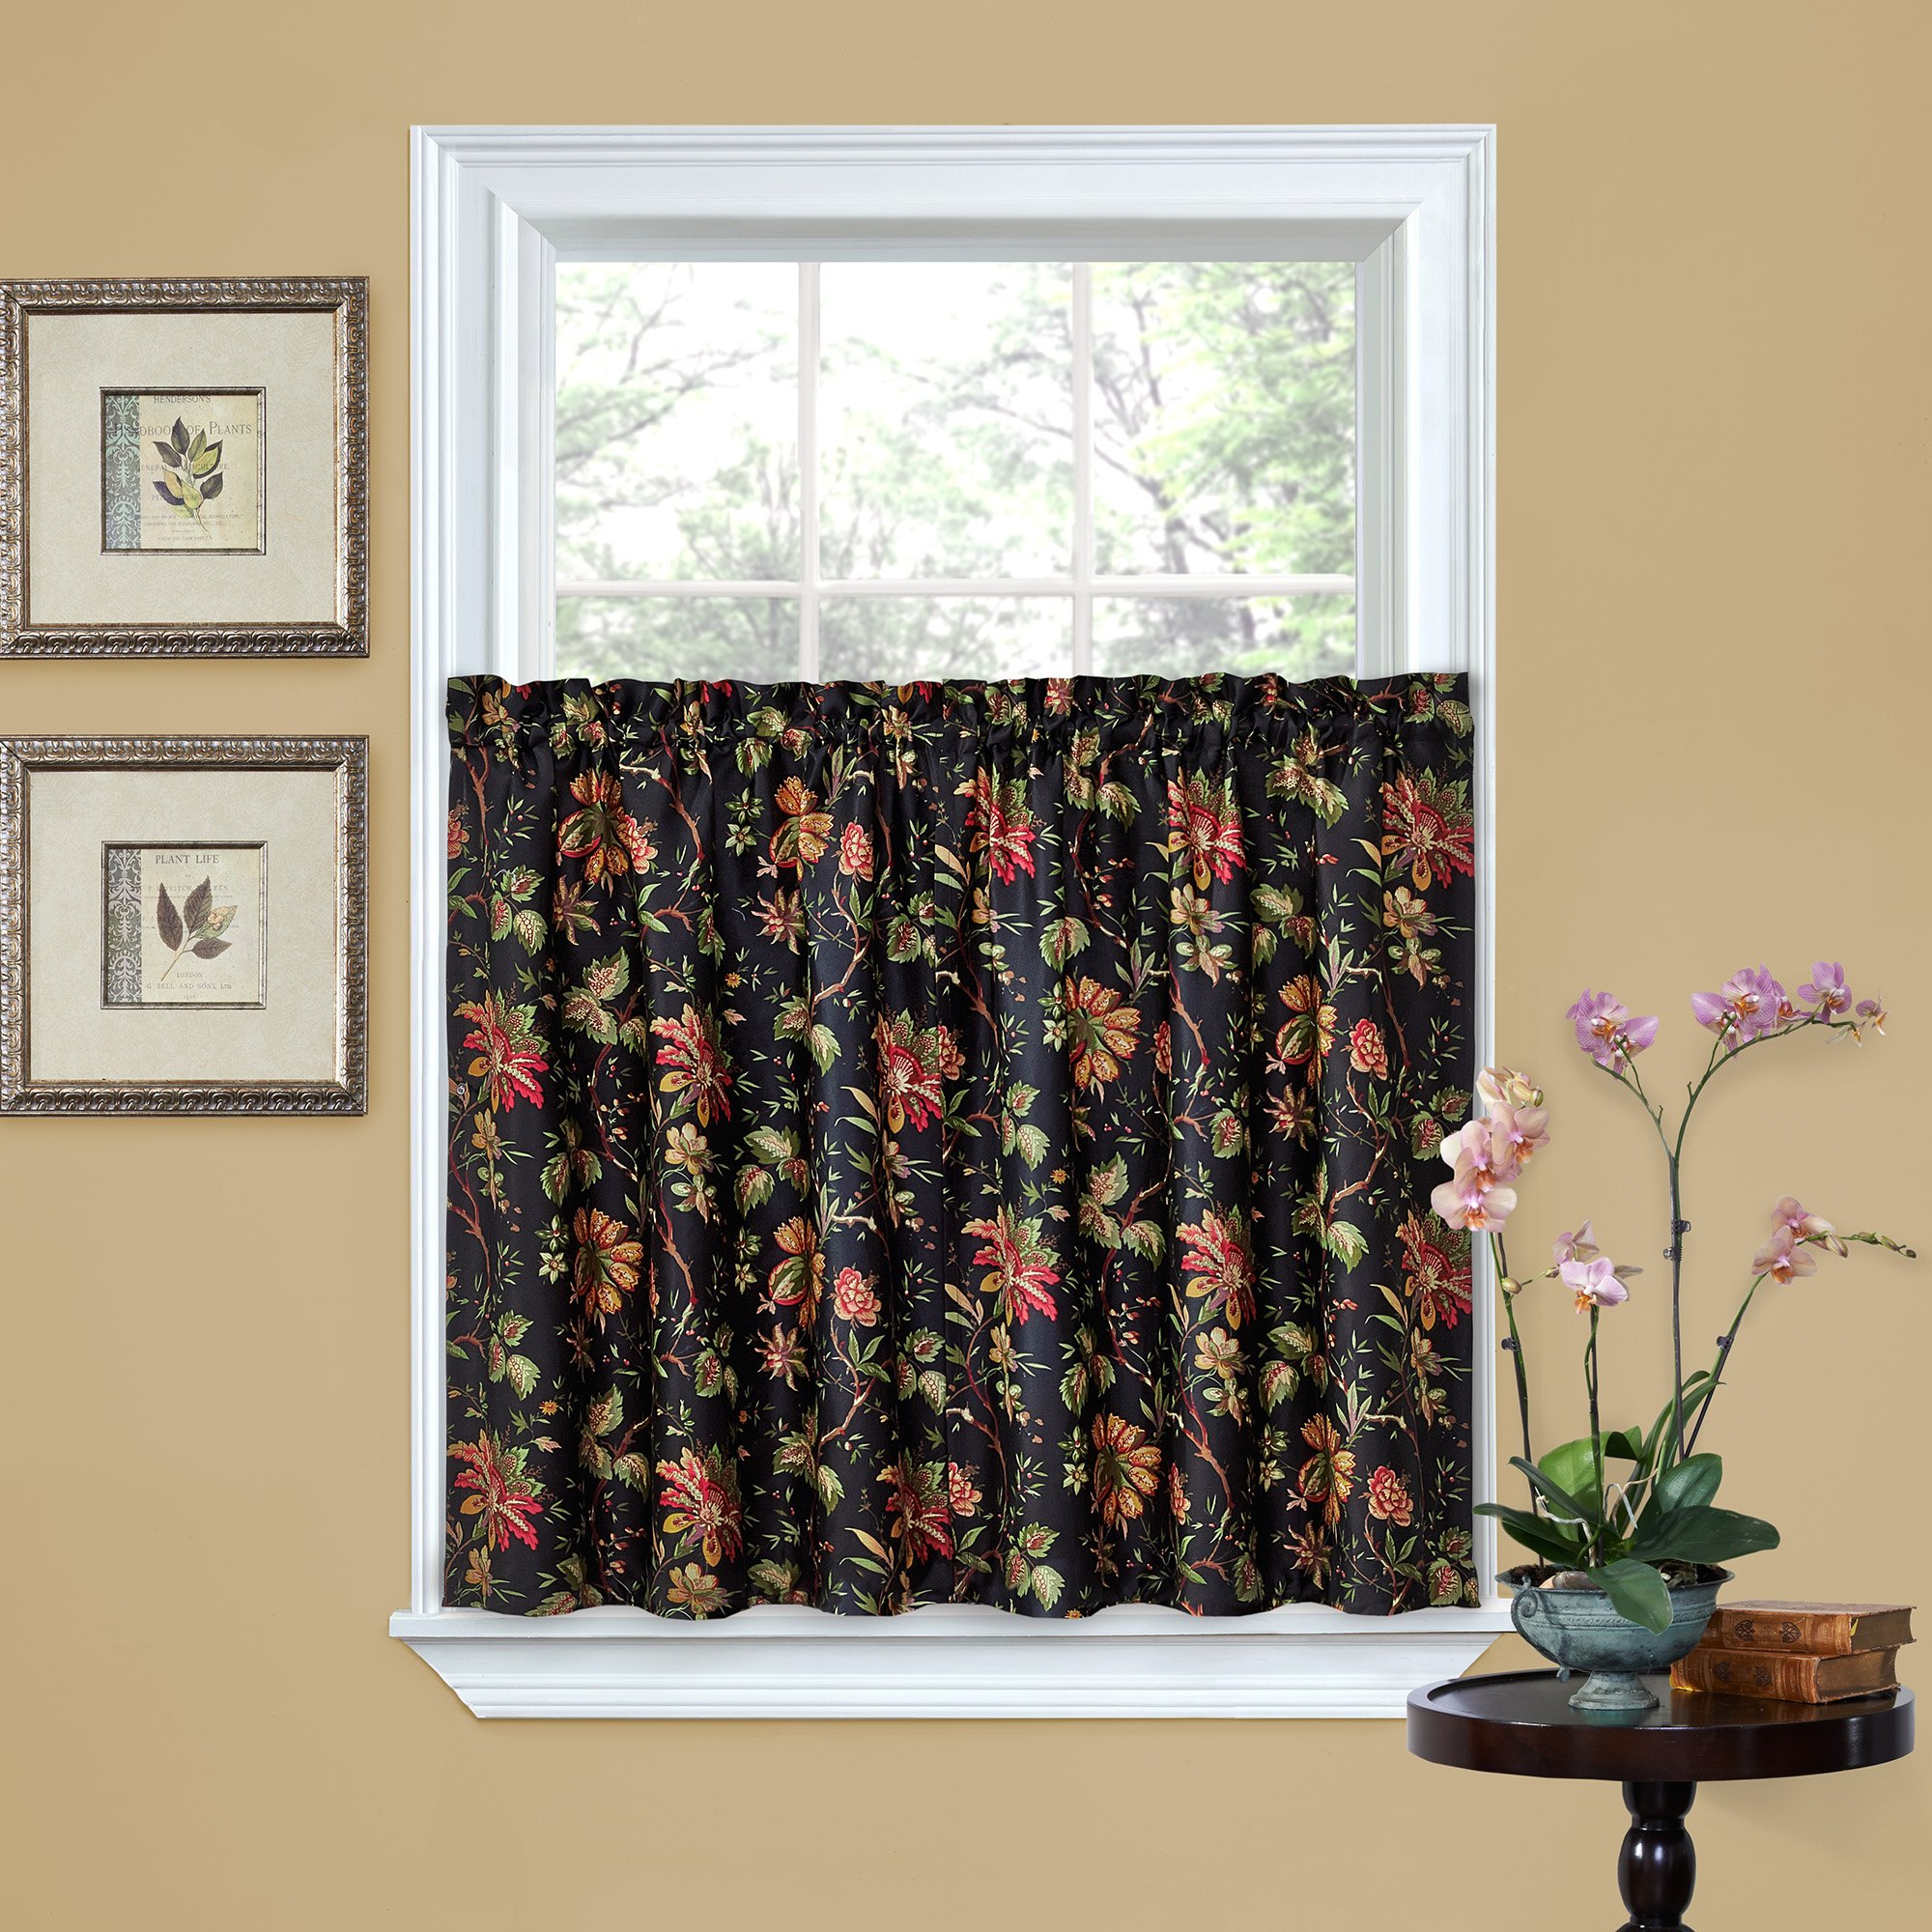 WAVERLY Kitchen Curtains Felicite 52'' x 36'' Small Panel Tiers Privacy Window Treatment Pair Bathroom, Living Room, Noir by WAVERLY